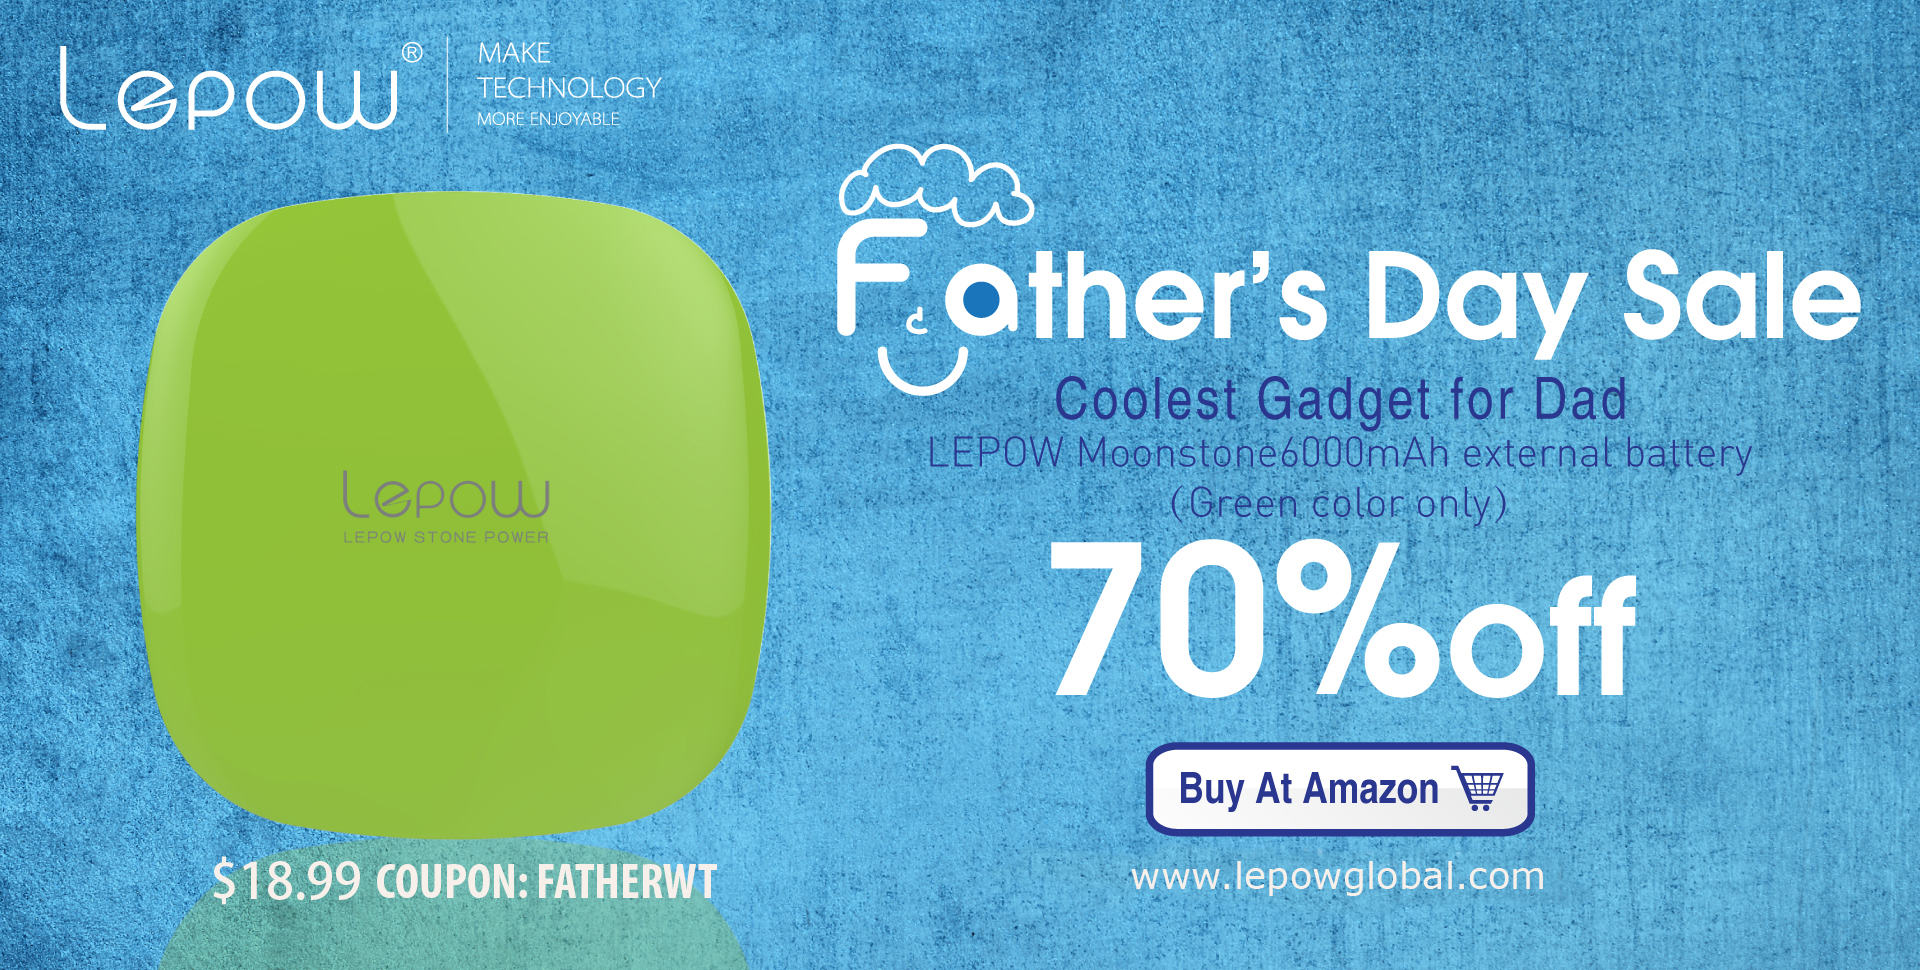 Father's Day Sale Gadget 70% Off by @LEPOWOFFICIAL